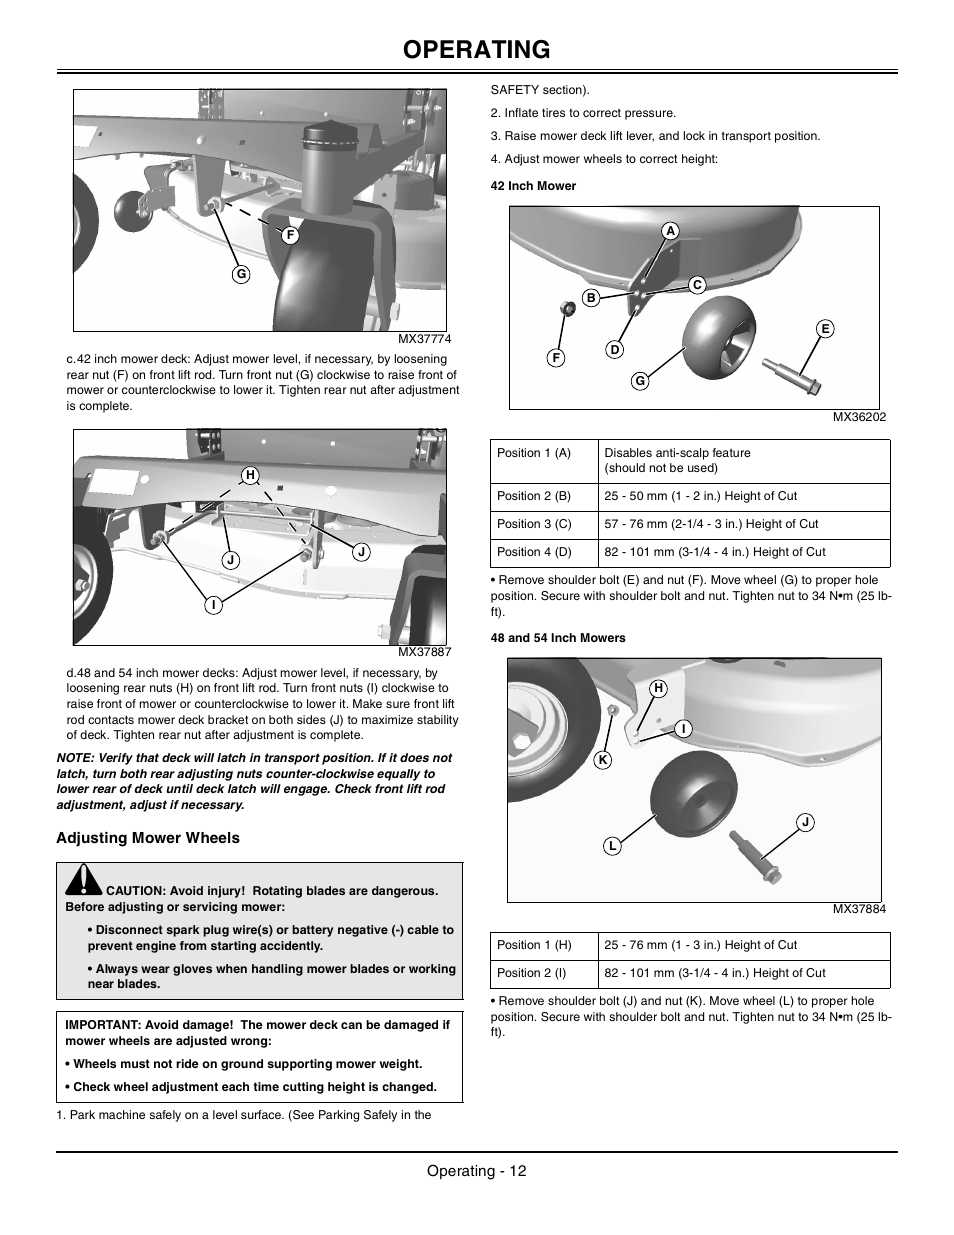 Adjusting Mower Wheels 42 Inch Mower 48 And 54 Inch Manual Guide